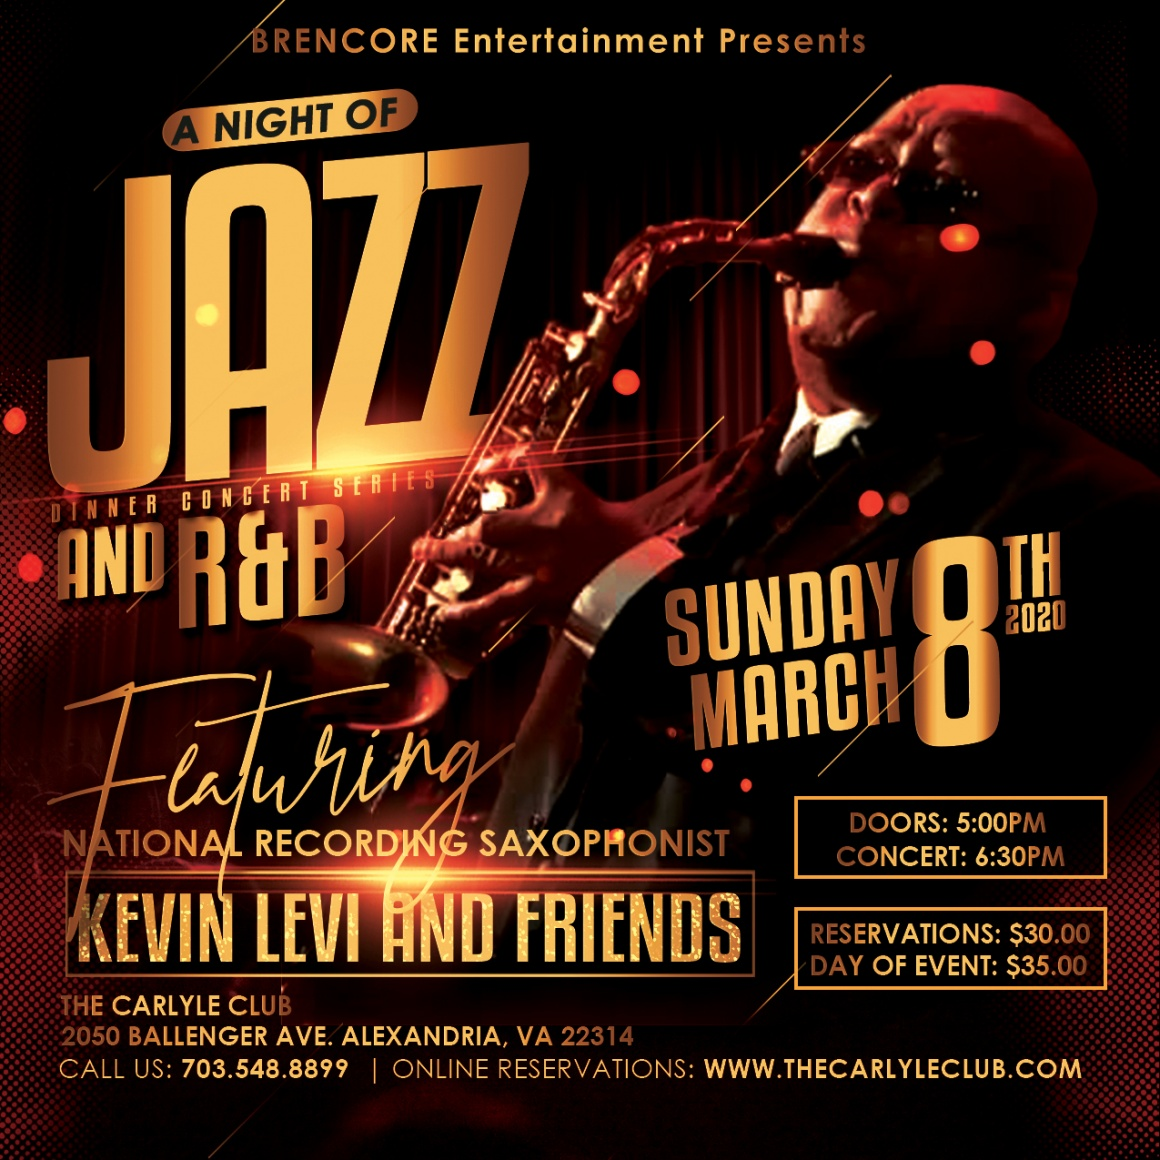 A Night of Jazz and R&B featuring Saxophonist Kevin Levi and Friends